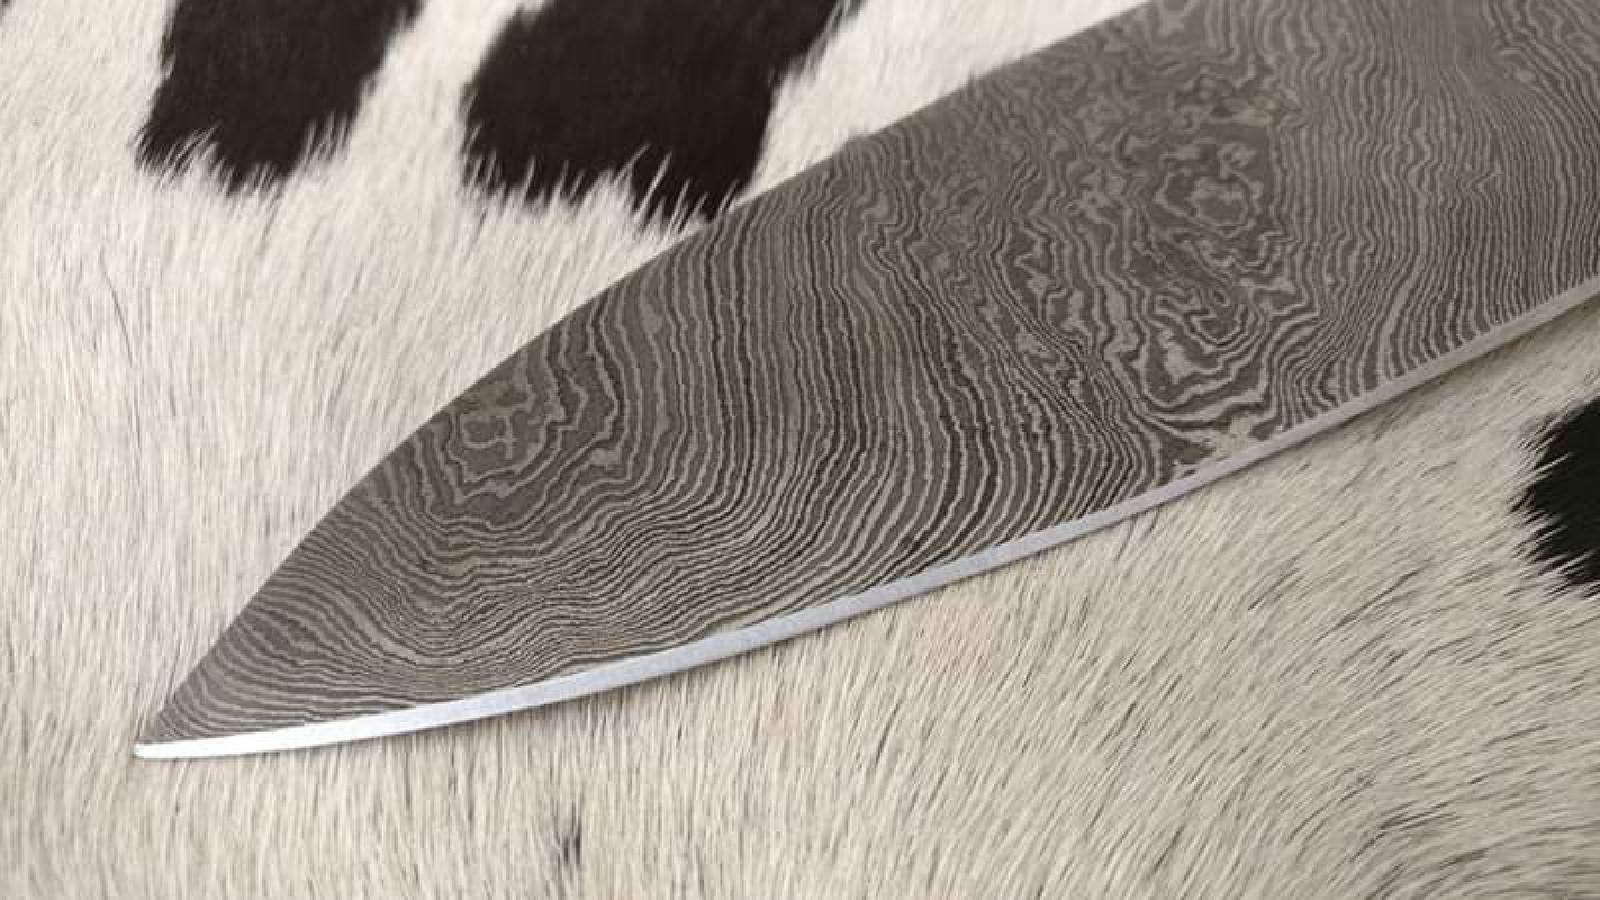 For Sale, Hand Made Chef Knife image 3